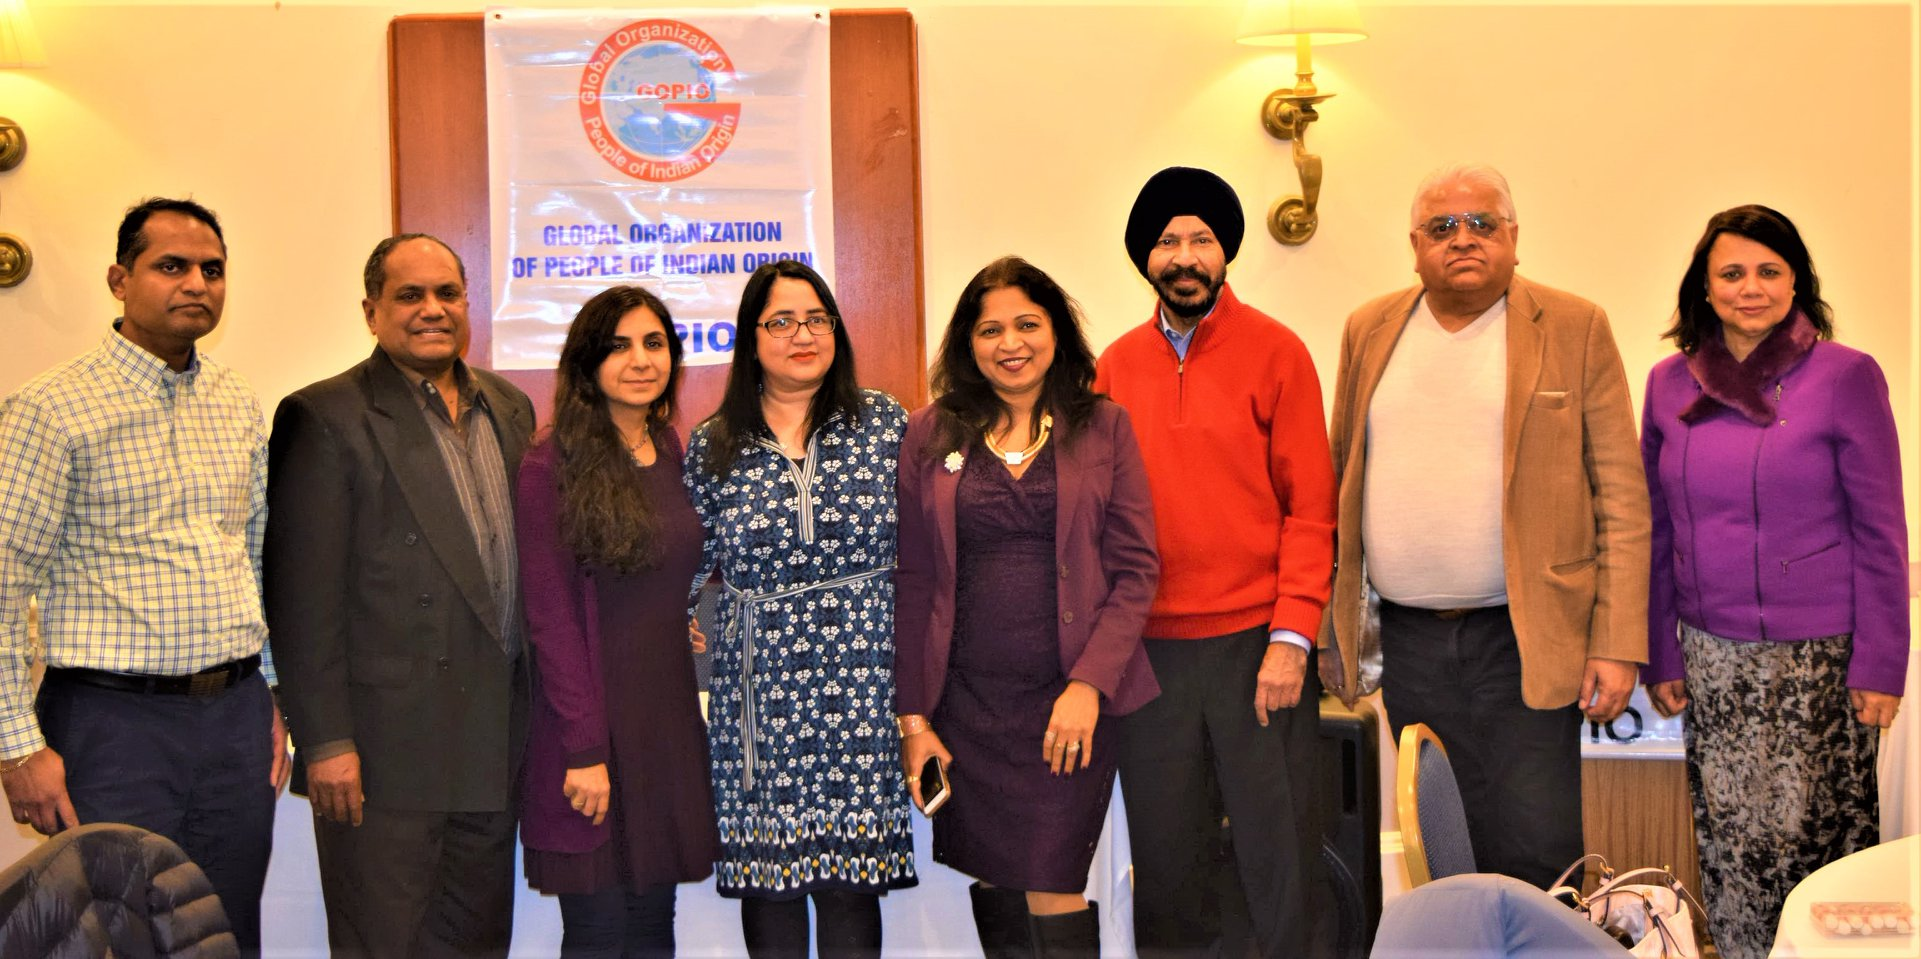 GOPIO-CT officials with Health seminar speakers; From l. to r.: Santosh Gannu, GOPIO Chairman Dr. Thomas Abraham, Yashasvi Jhangiani, Dr. Alka S. Popli, Dr. Jaya Daptardar, Ravi Dhingra, Ashok Nichani and GOPIO-CT Anita Bhat